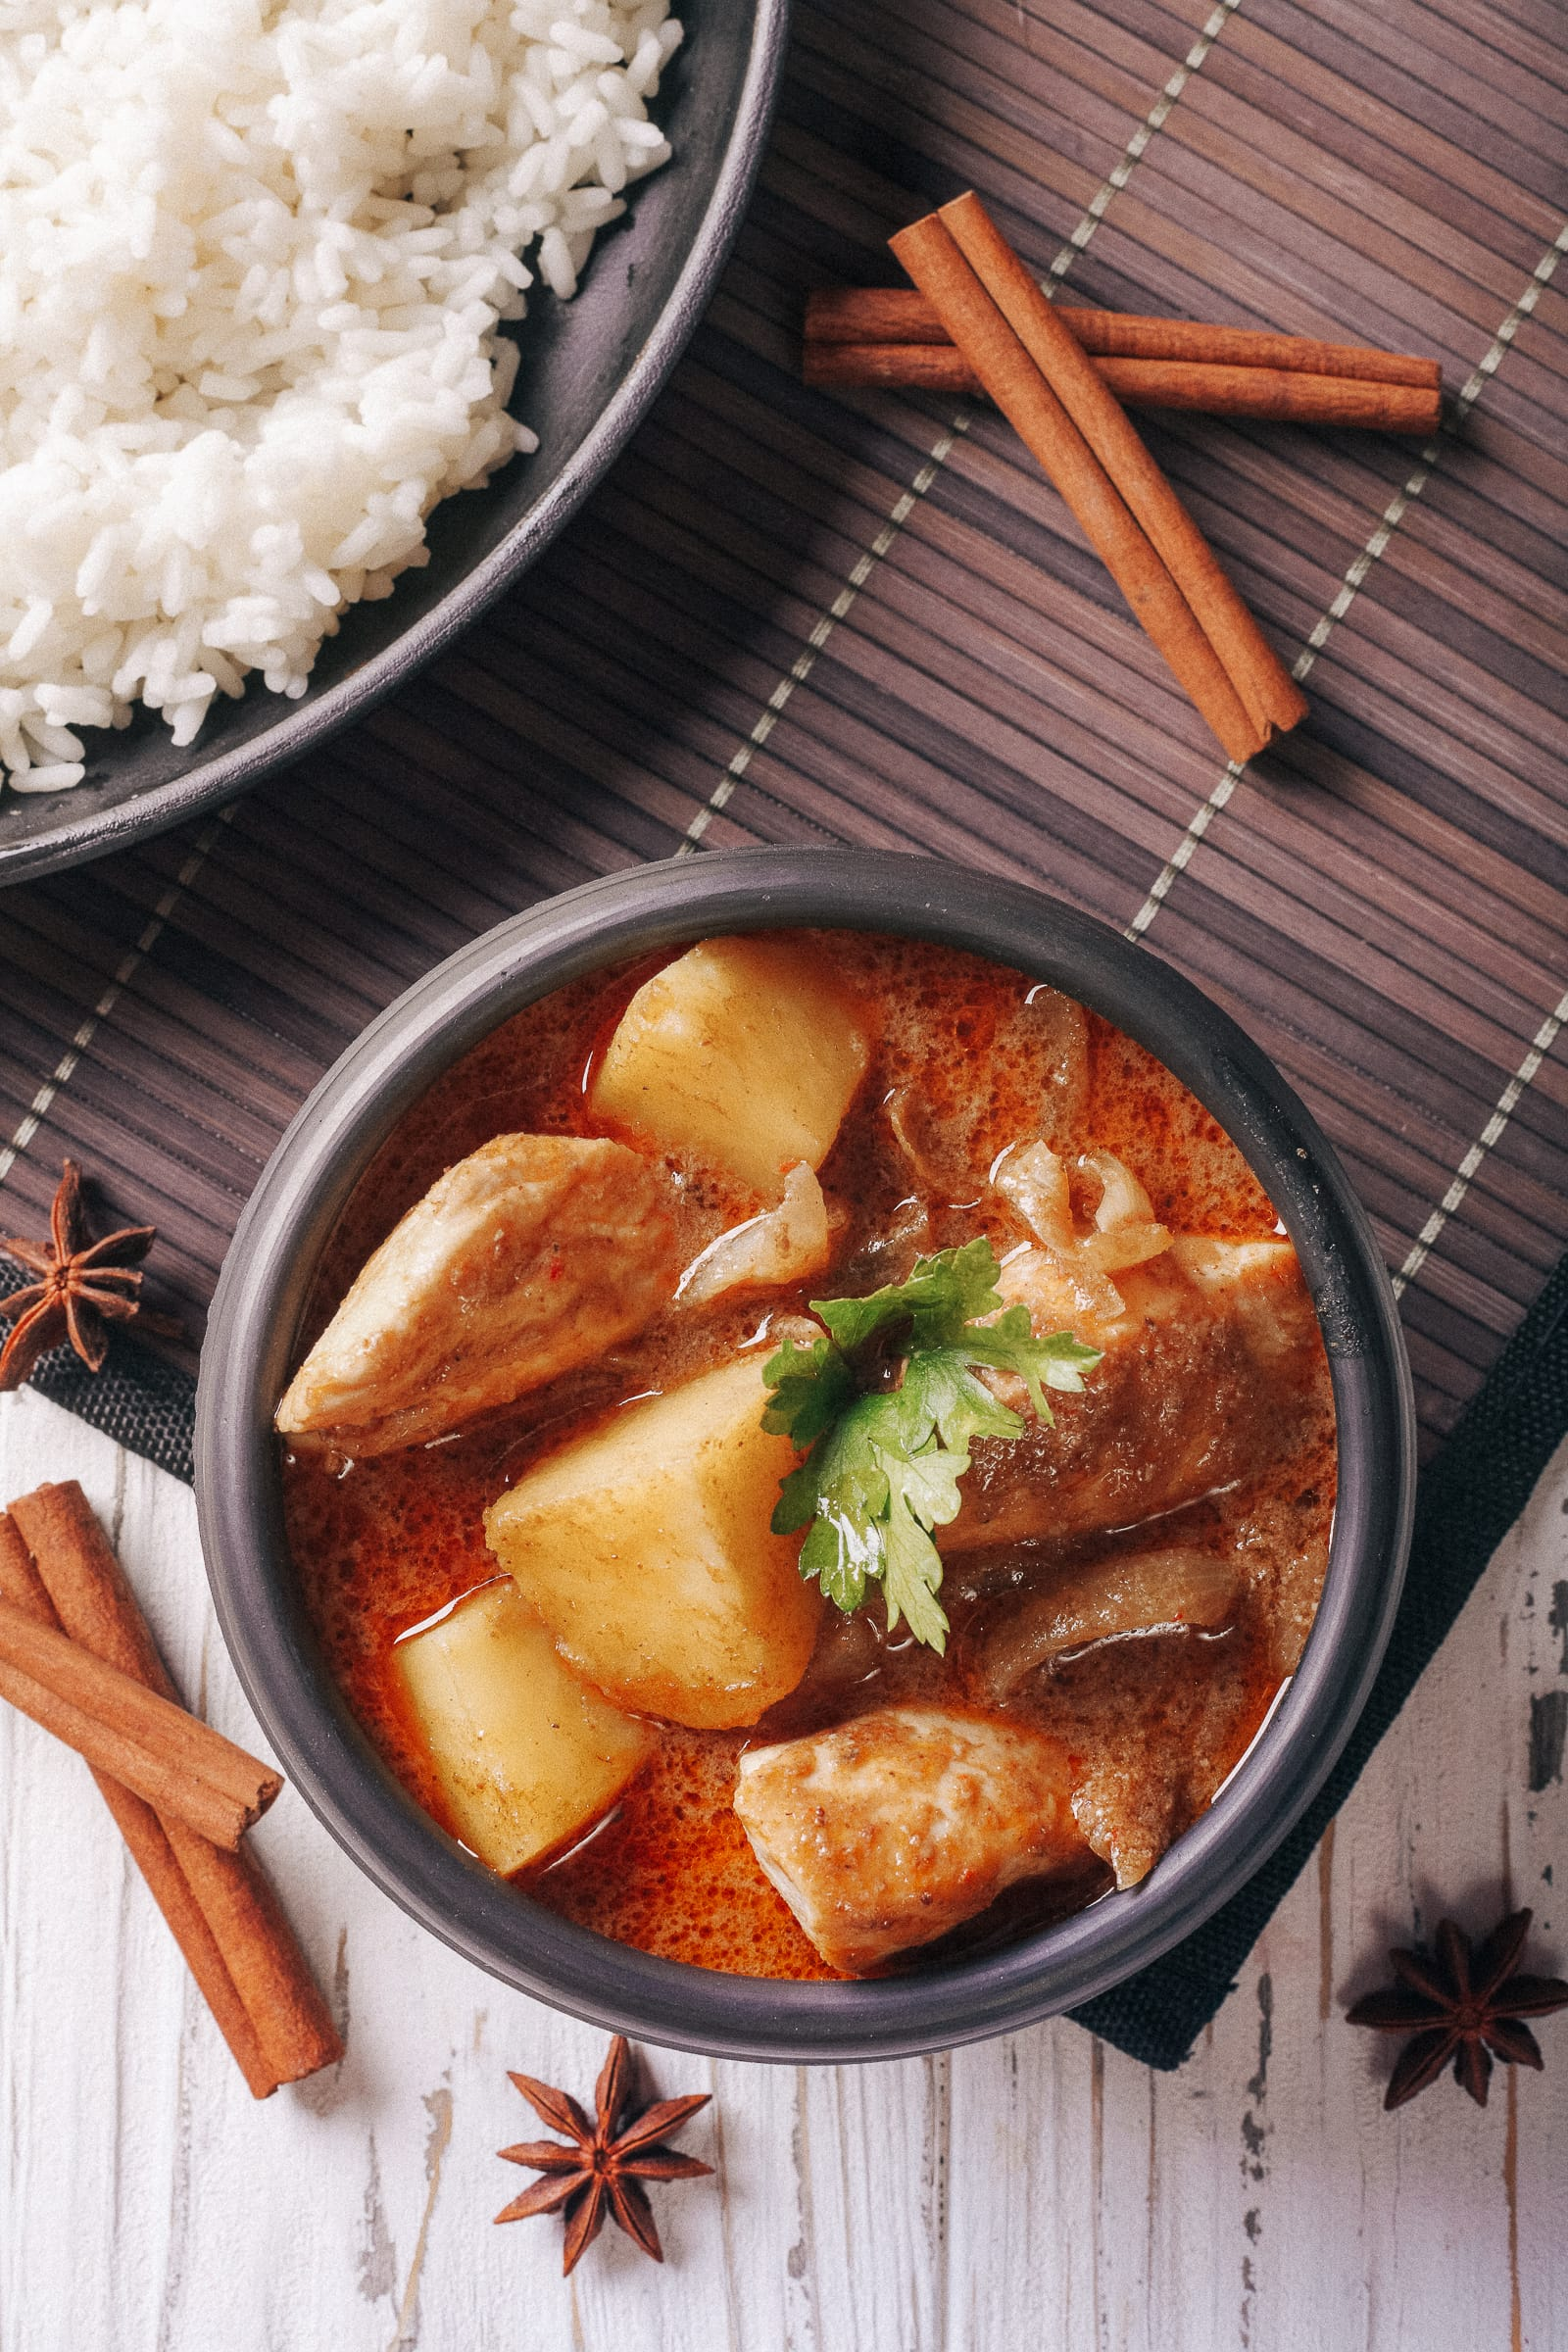 12 Tasty Thai Dishes And Food to Eat When in Thailand (8)